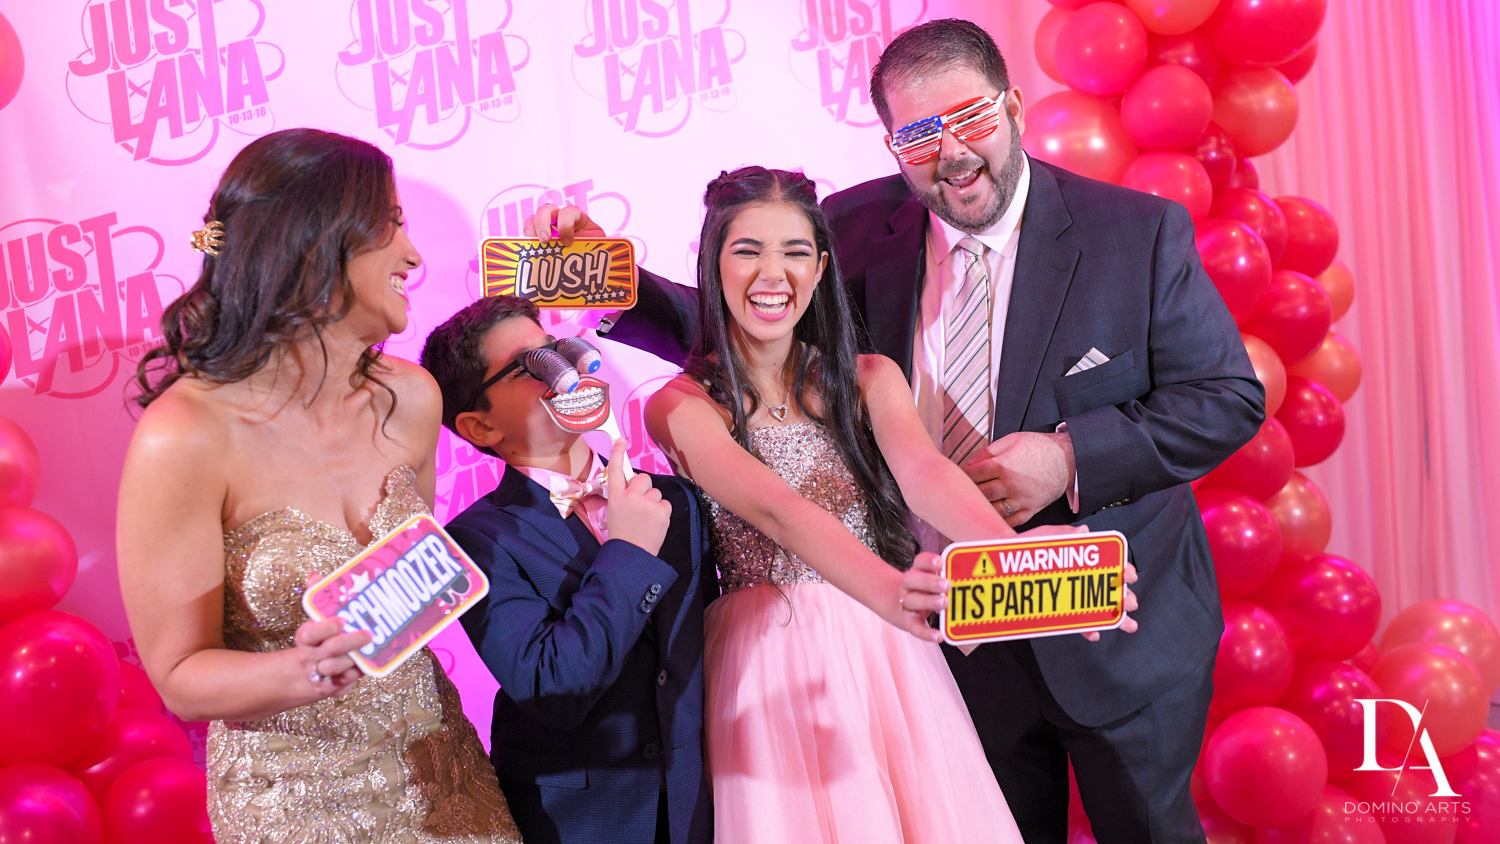 Fun photo booth bat mitzvah at Amazing trendy organic balloon decor at pink bat mitzvah at Saint Andrews Country Club South Florida by Domino Arts Photography